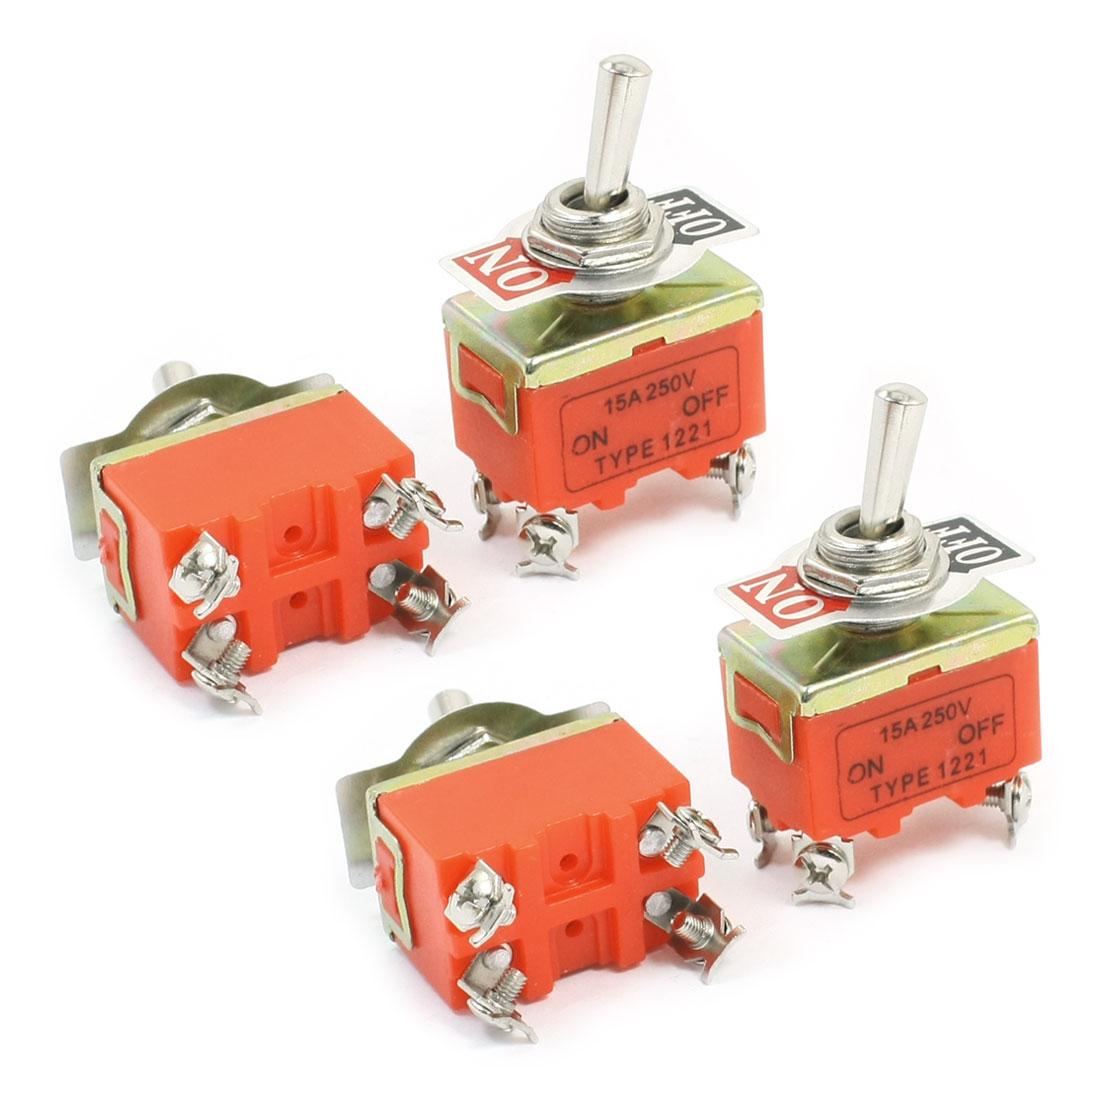 ON-OFF DPST 4 Screw Pin Rocker Type Toggle Switch AC 250V 15A E-TEN1221 4pcs